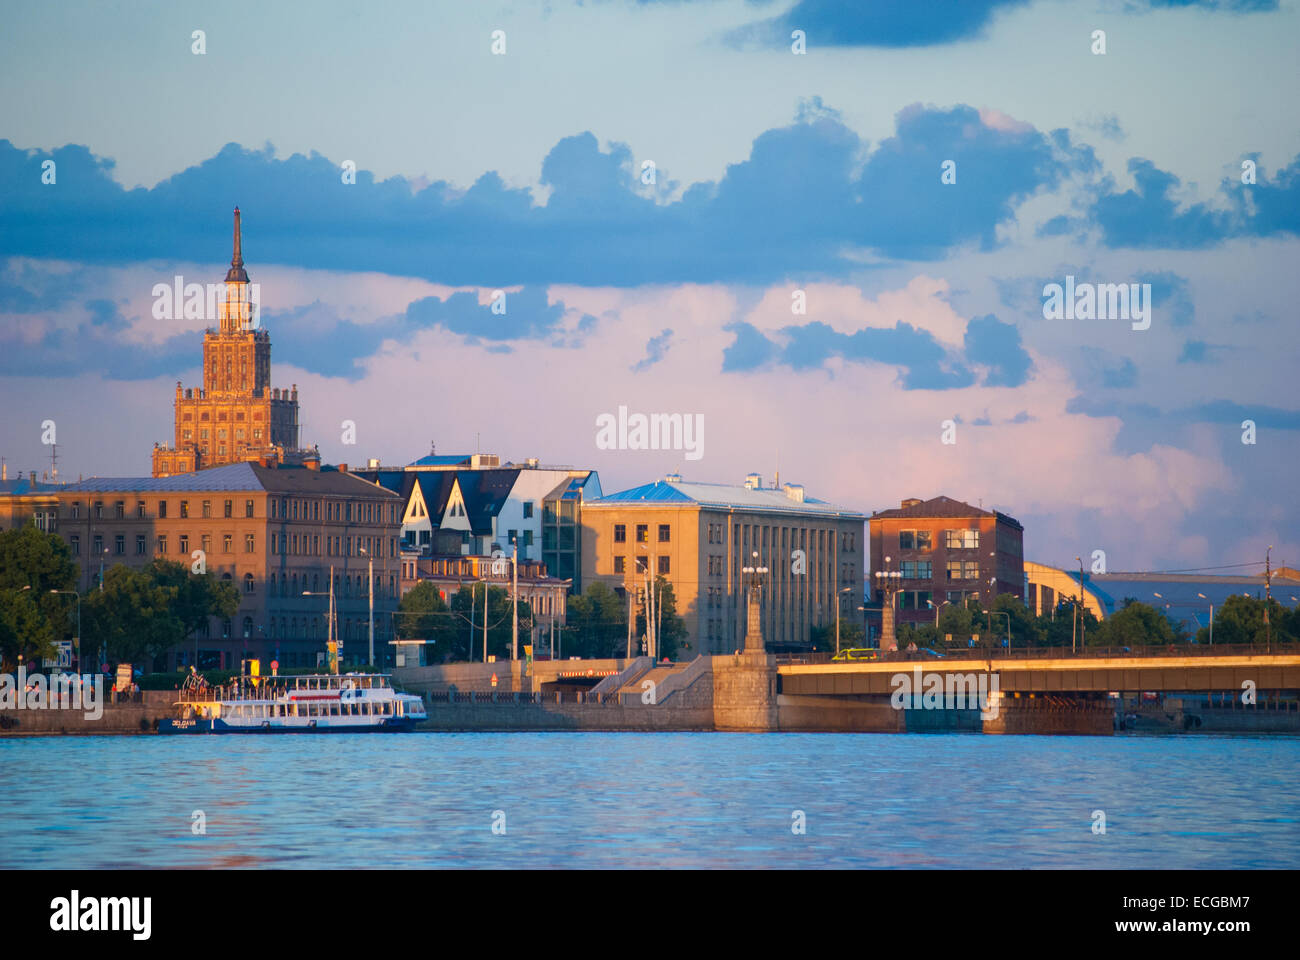 Riga in summer evening during sunset, Latvia - Stock Image